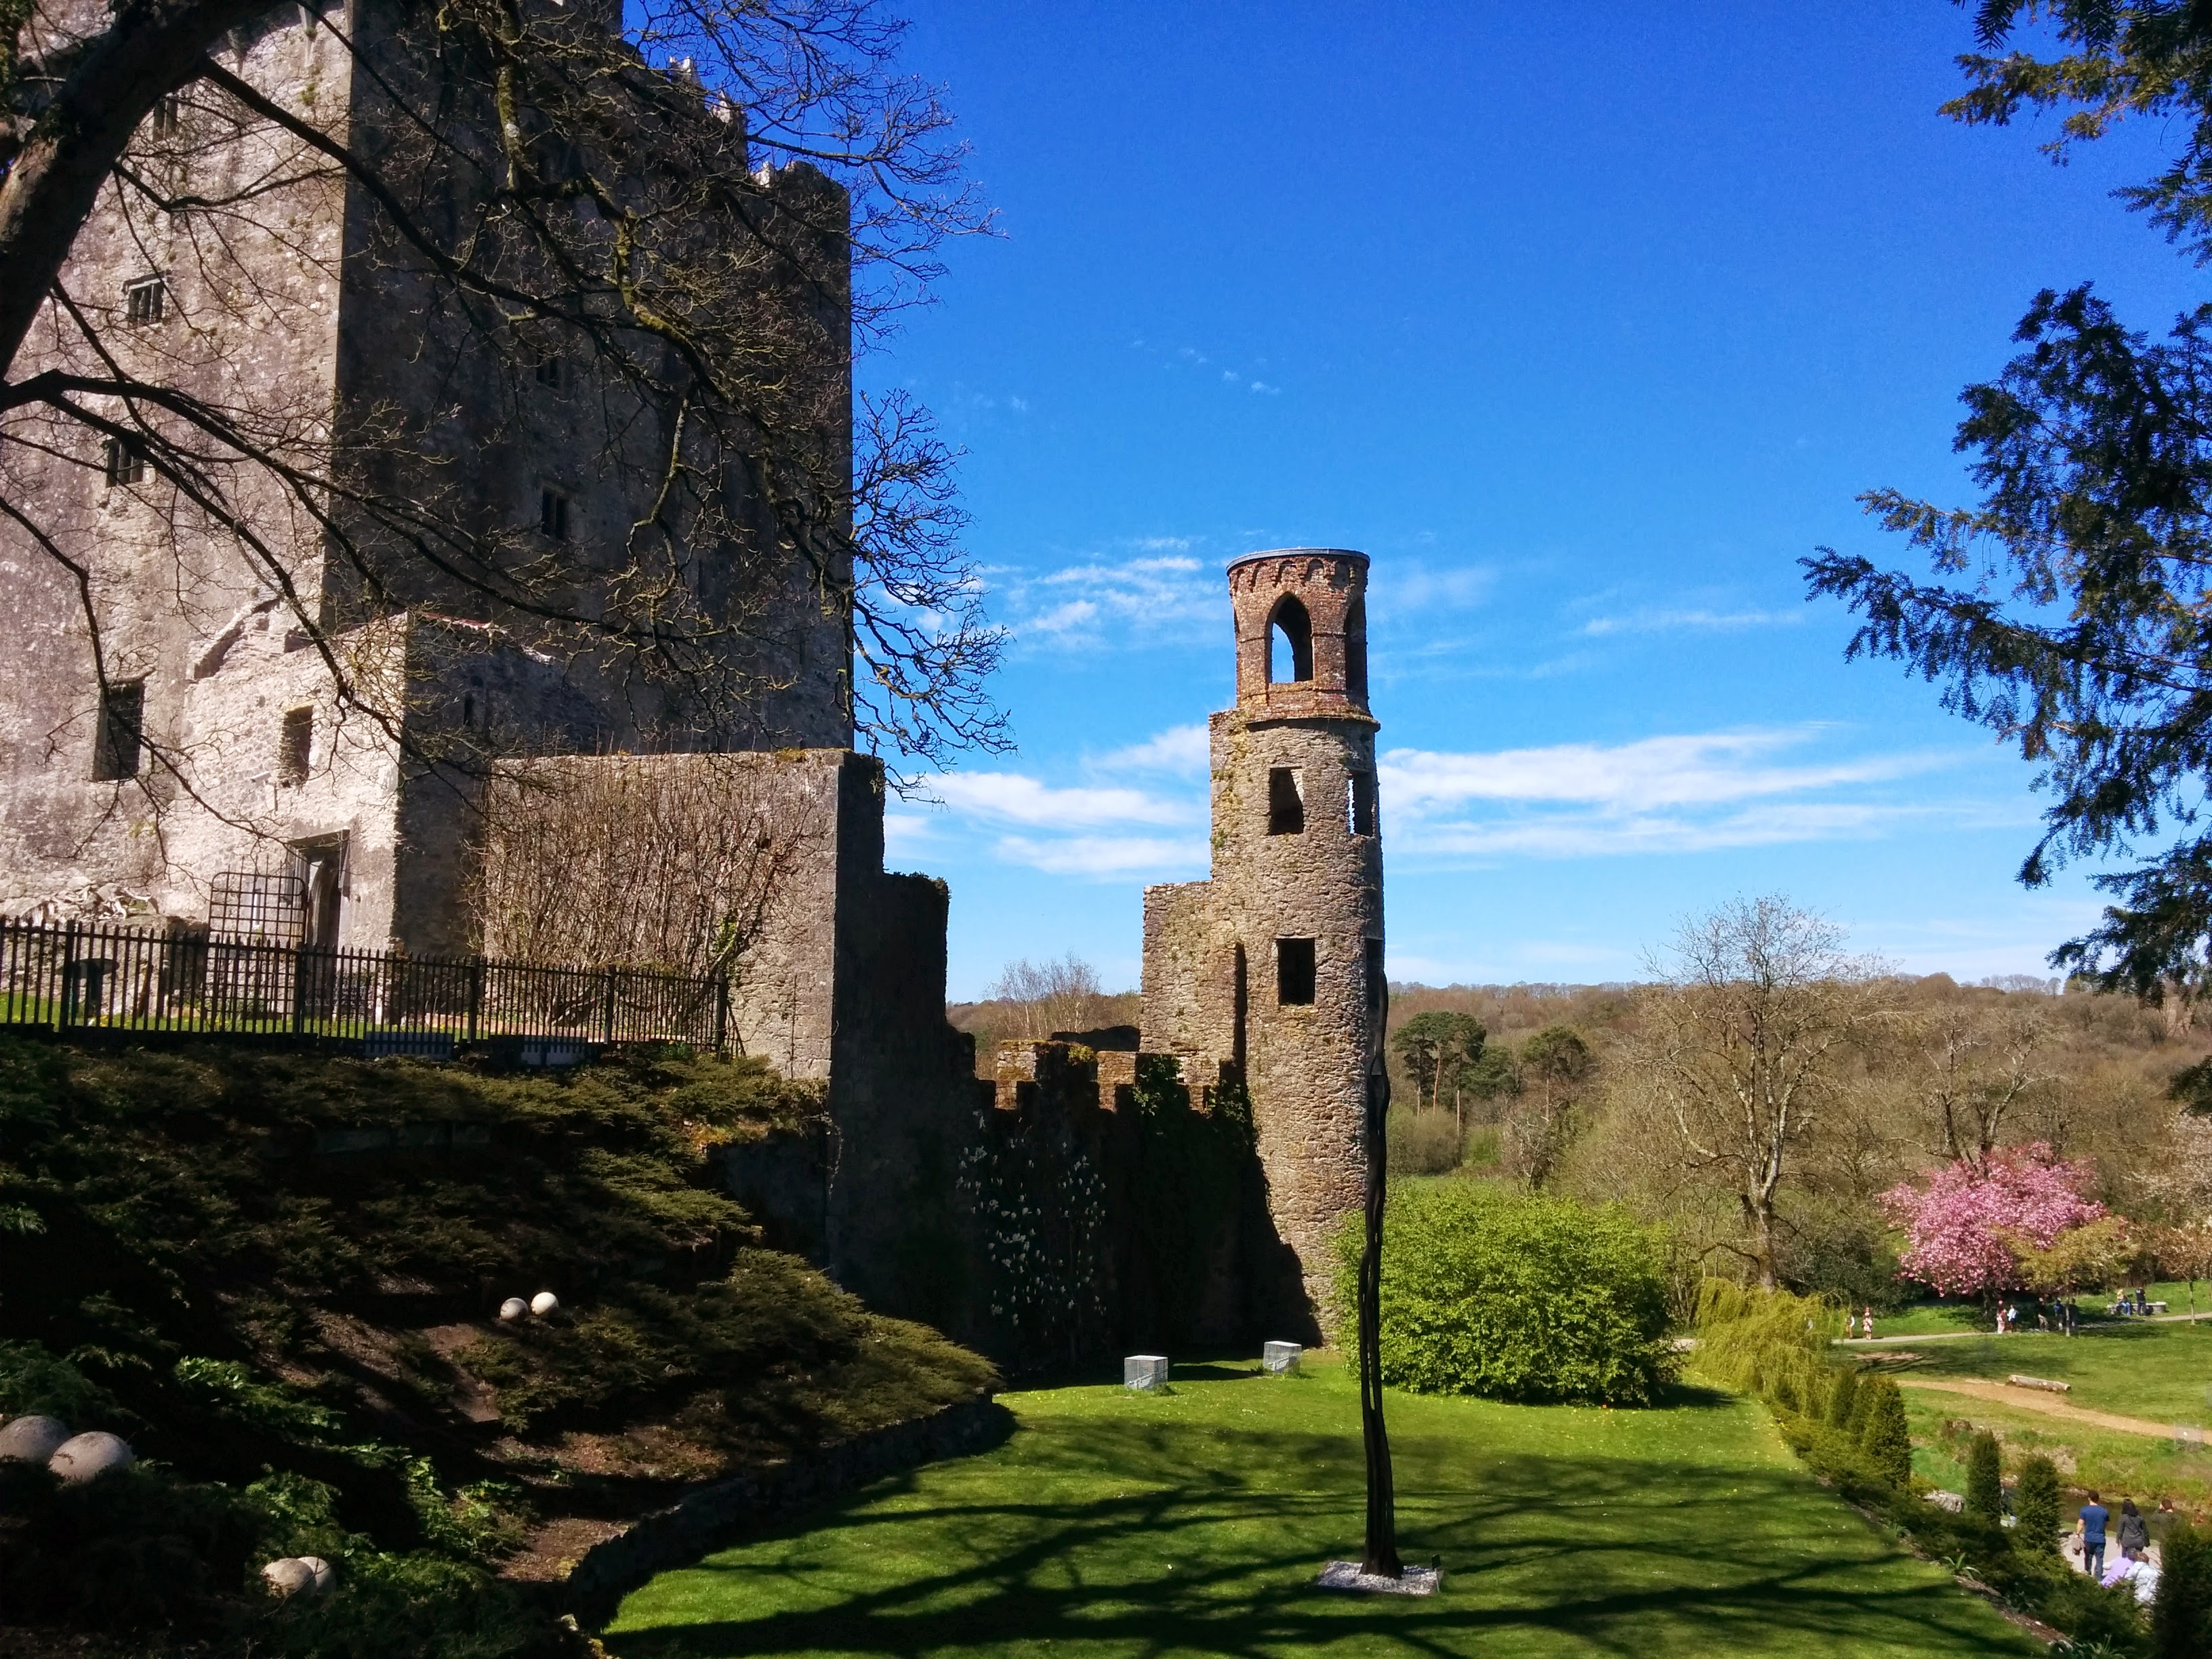 Blarney Castle tower and battlements